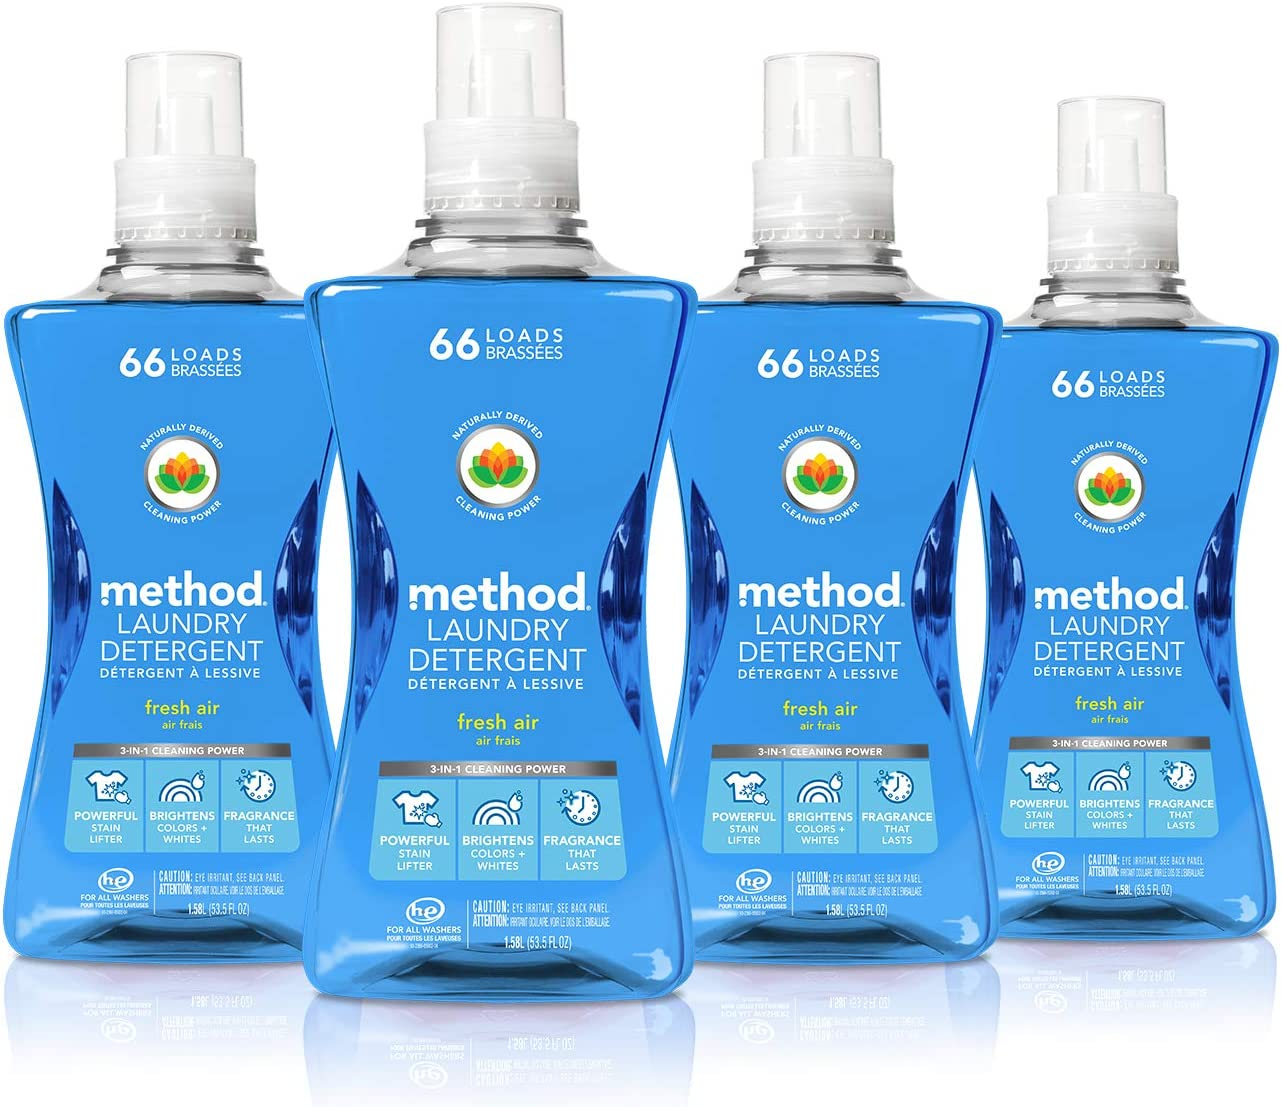 Method Concentrated Laundry Detergent, Naturally Derived, Fresh AirScent, 264 Loads, 53.5 Fluid Ounceper Bottle, Pack of 4